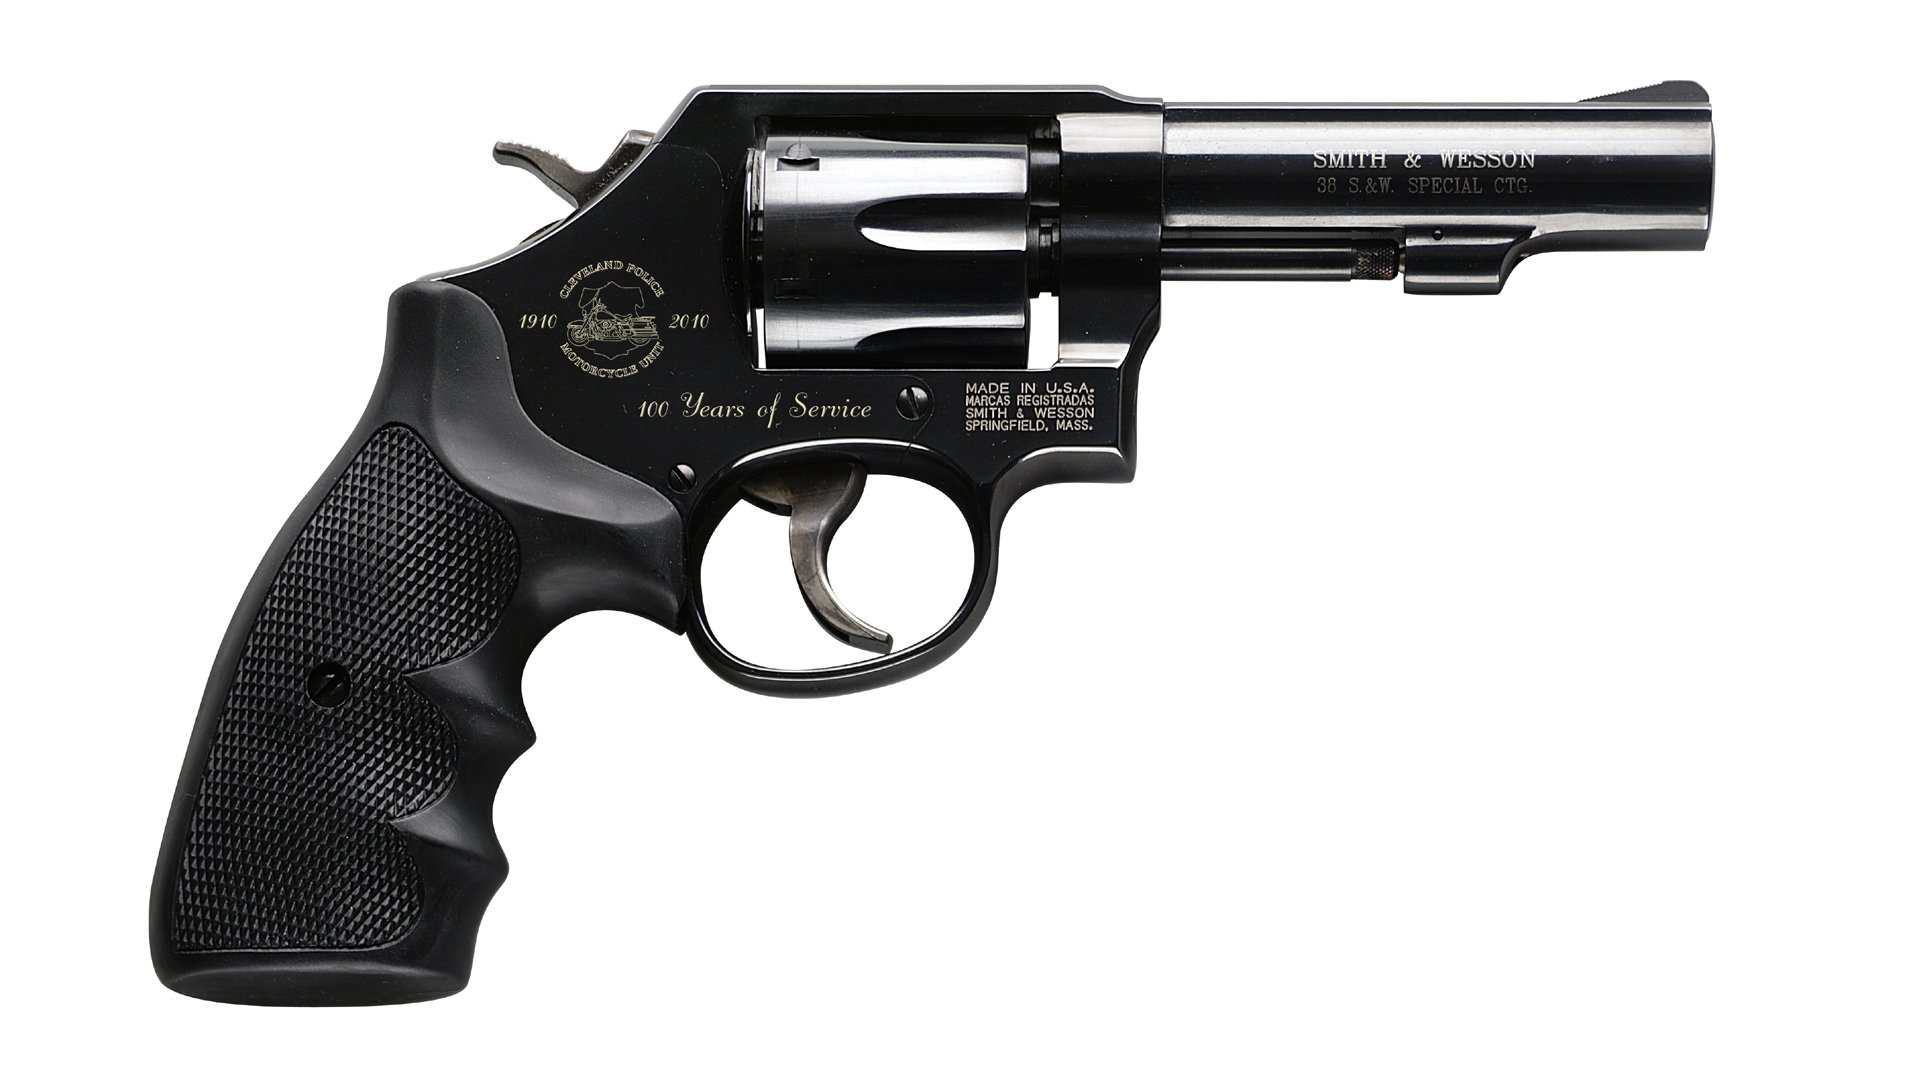 Smith Wesson Revolver Computer Wallpapers Desktop Backgrounds 1920x1080